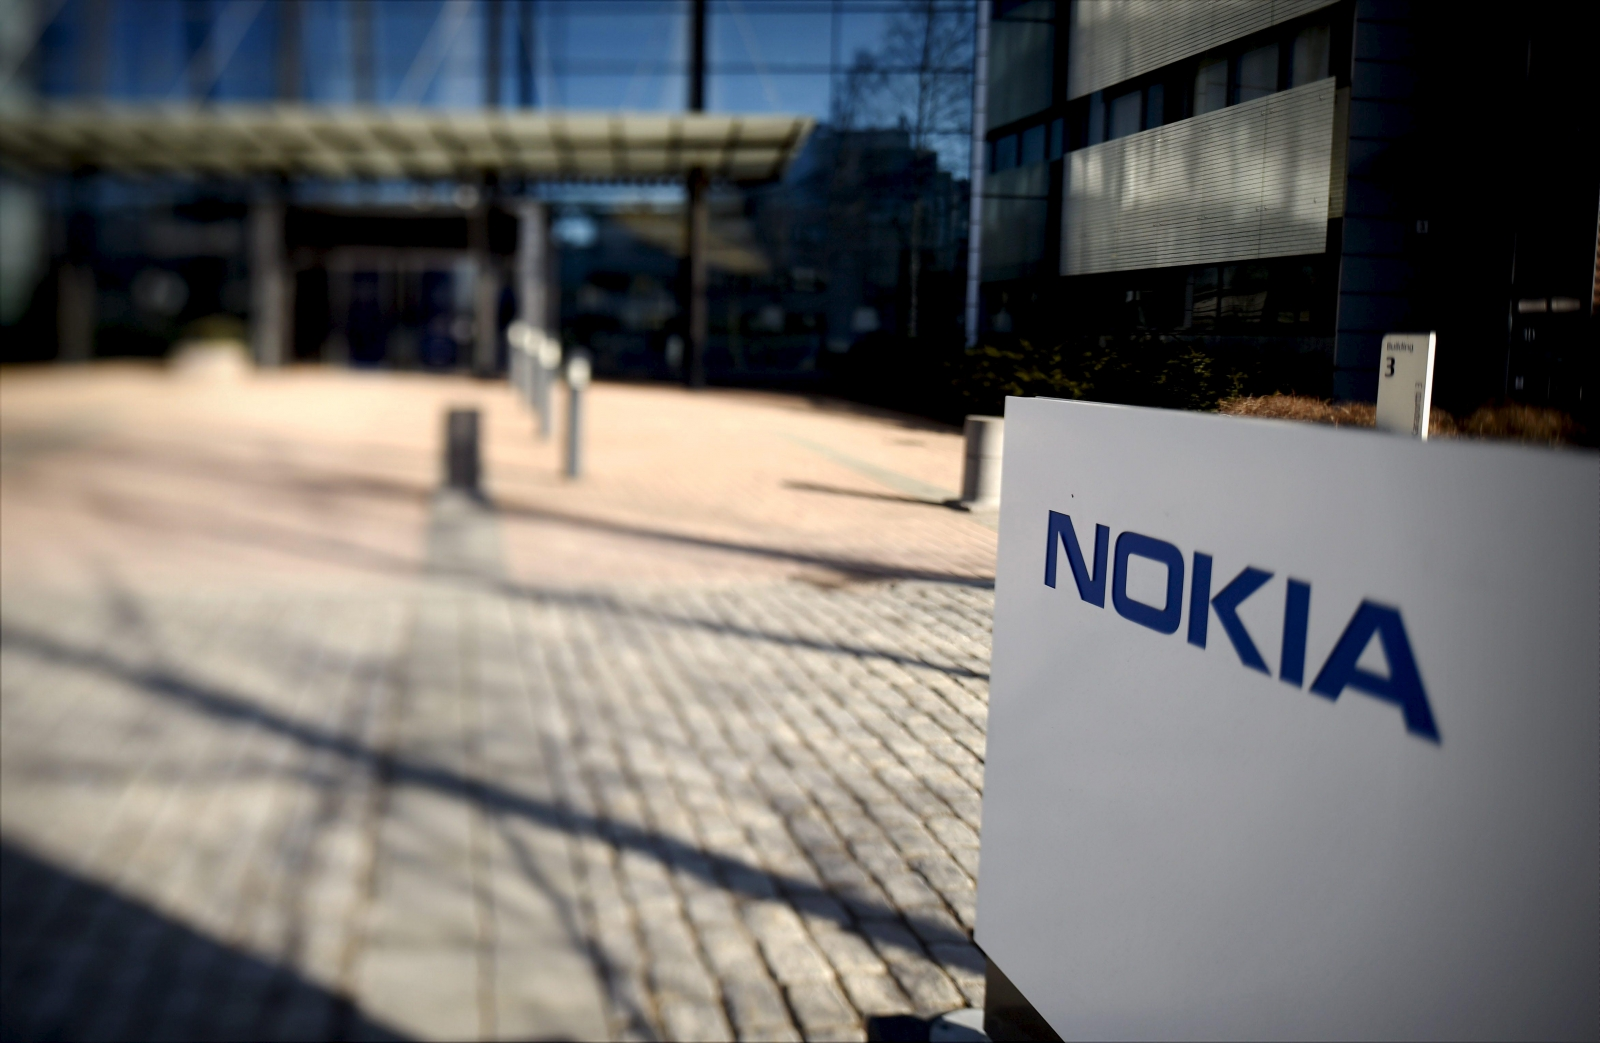 More Nokia announcements on 26 February